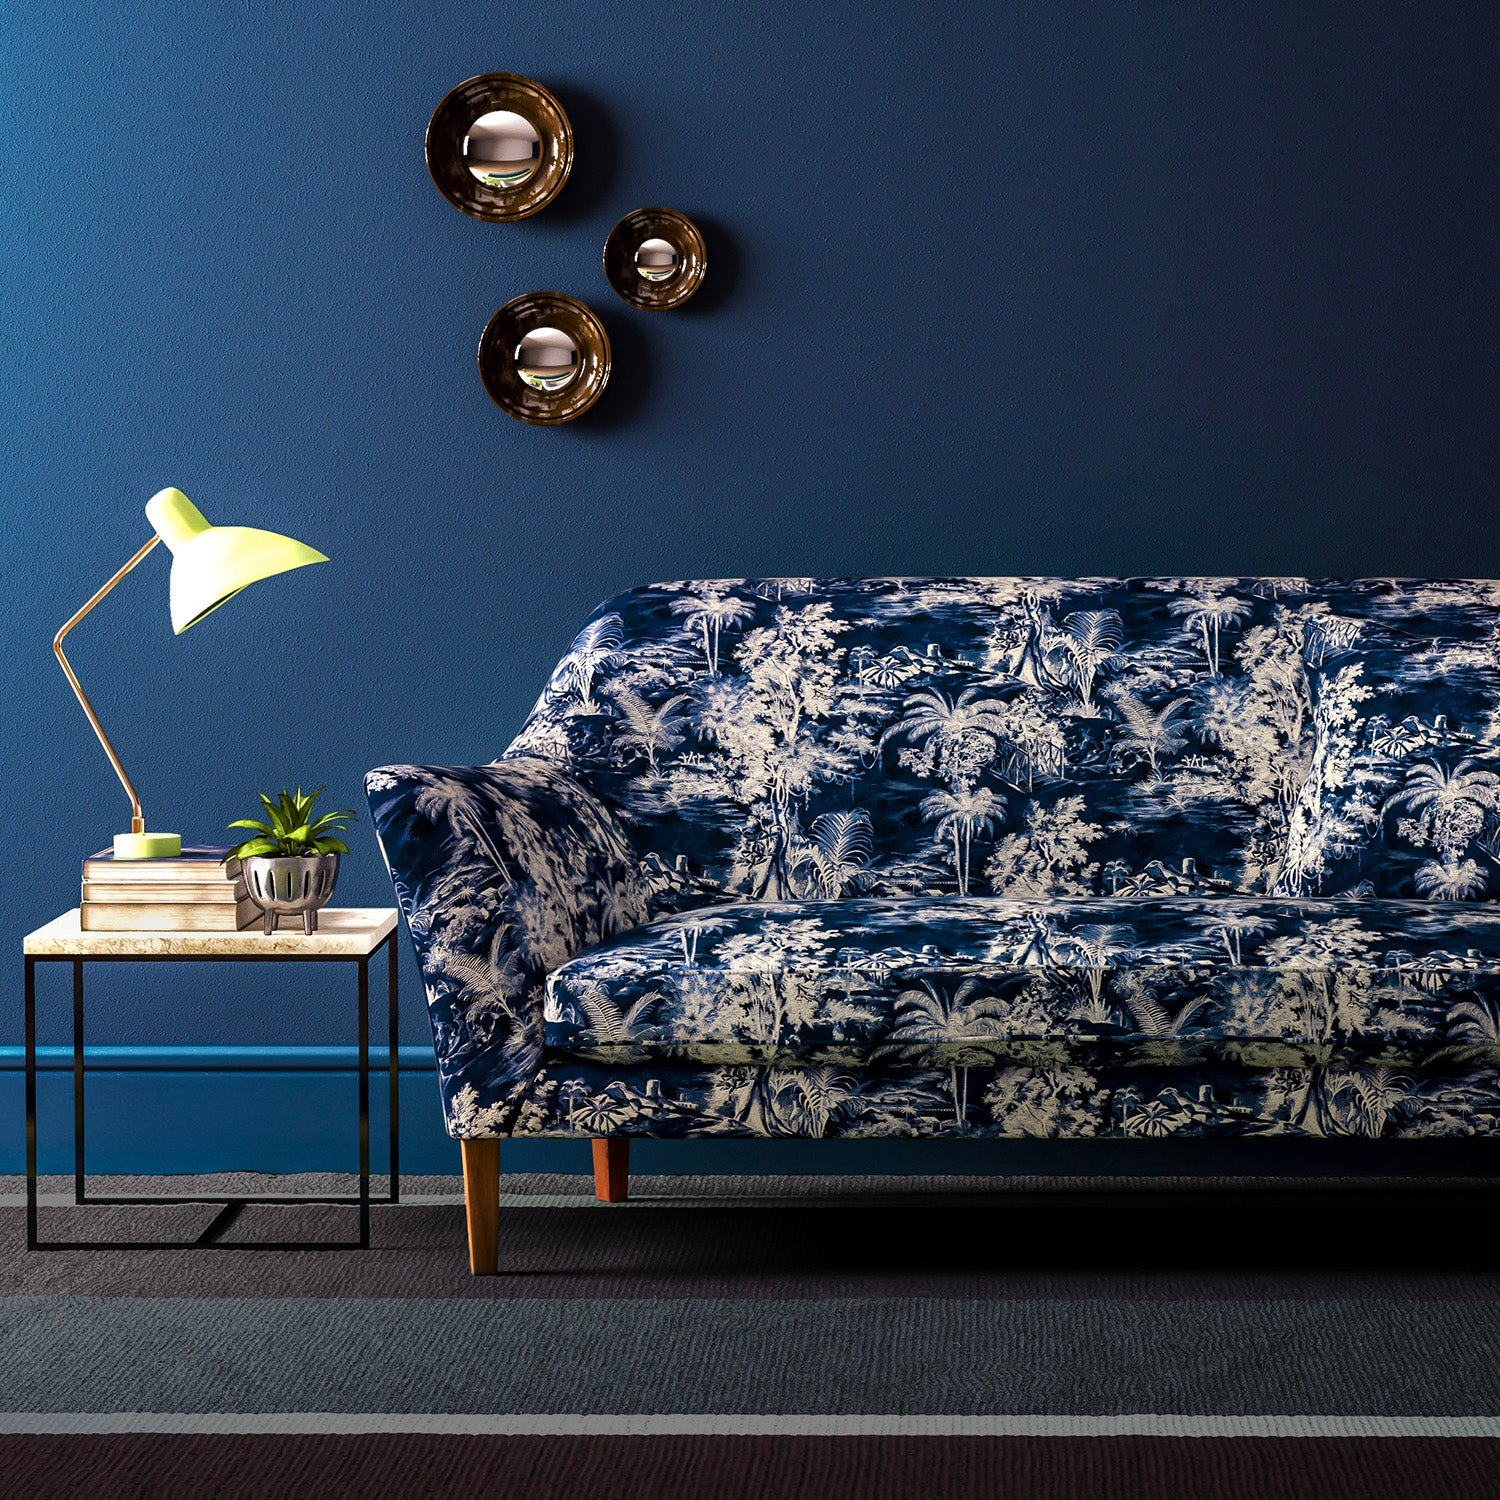 Velvet sofa upholstered in a indigo blue and white velvet upholstery fabric with palm tree design and stain resistant finish